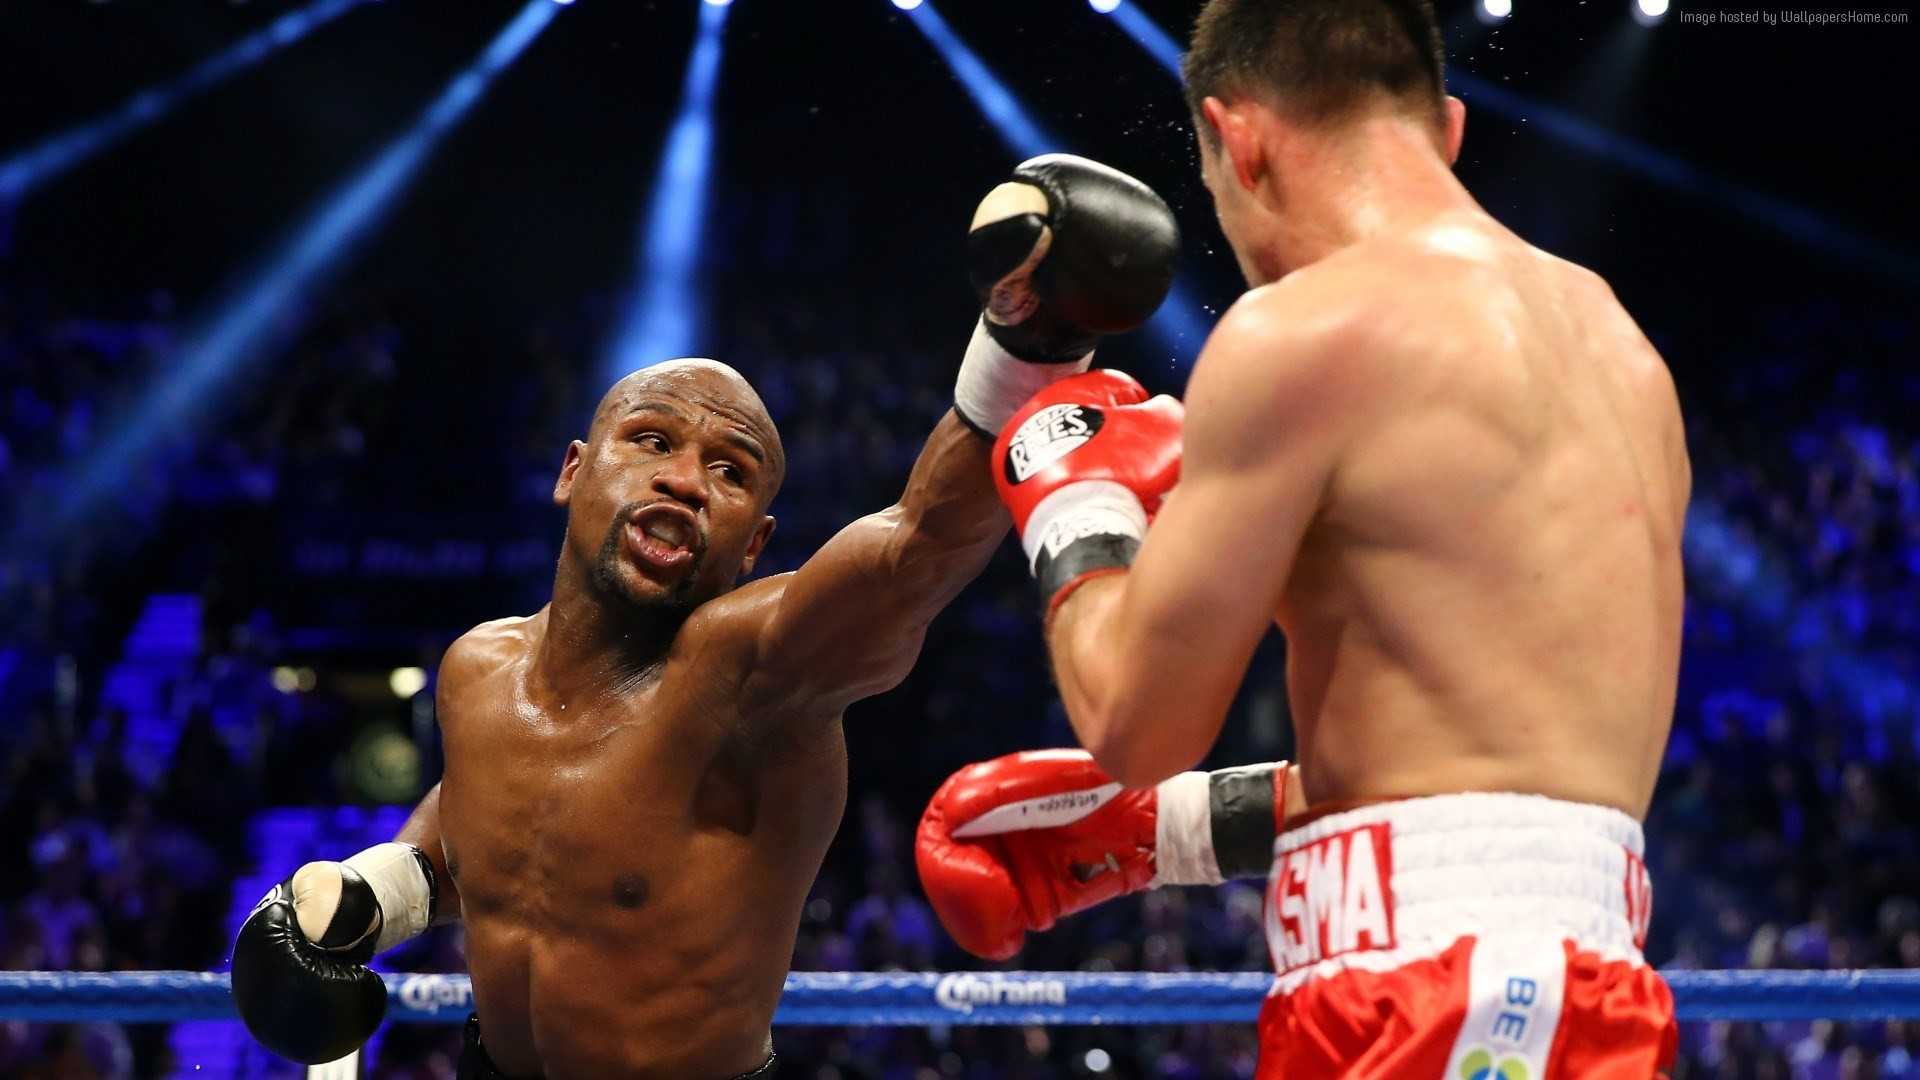 Boxing Wallpapers HD Desktop Backgrounds Images and Pictures